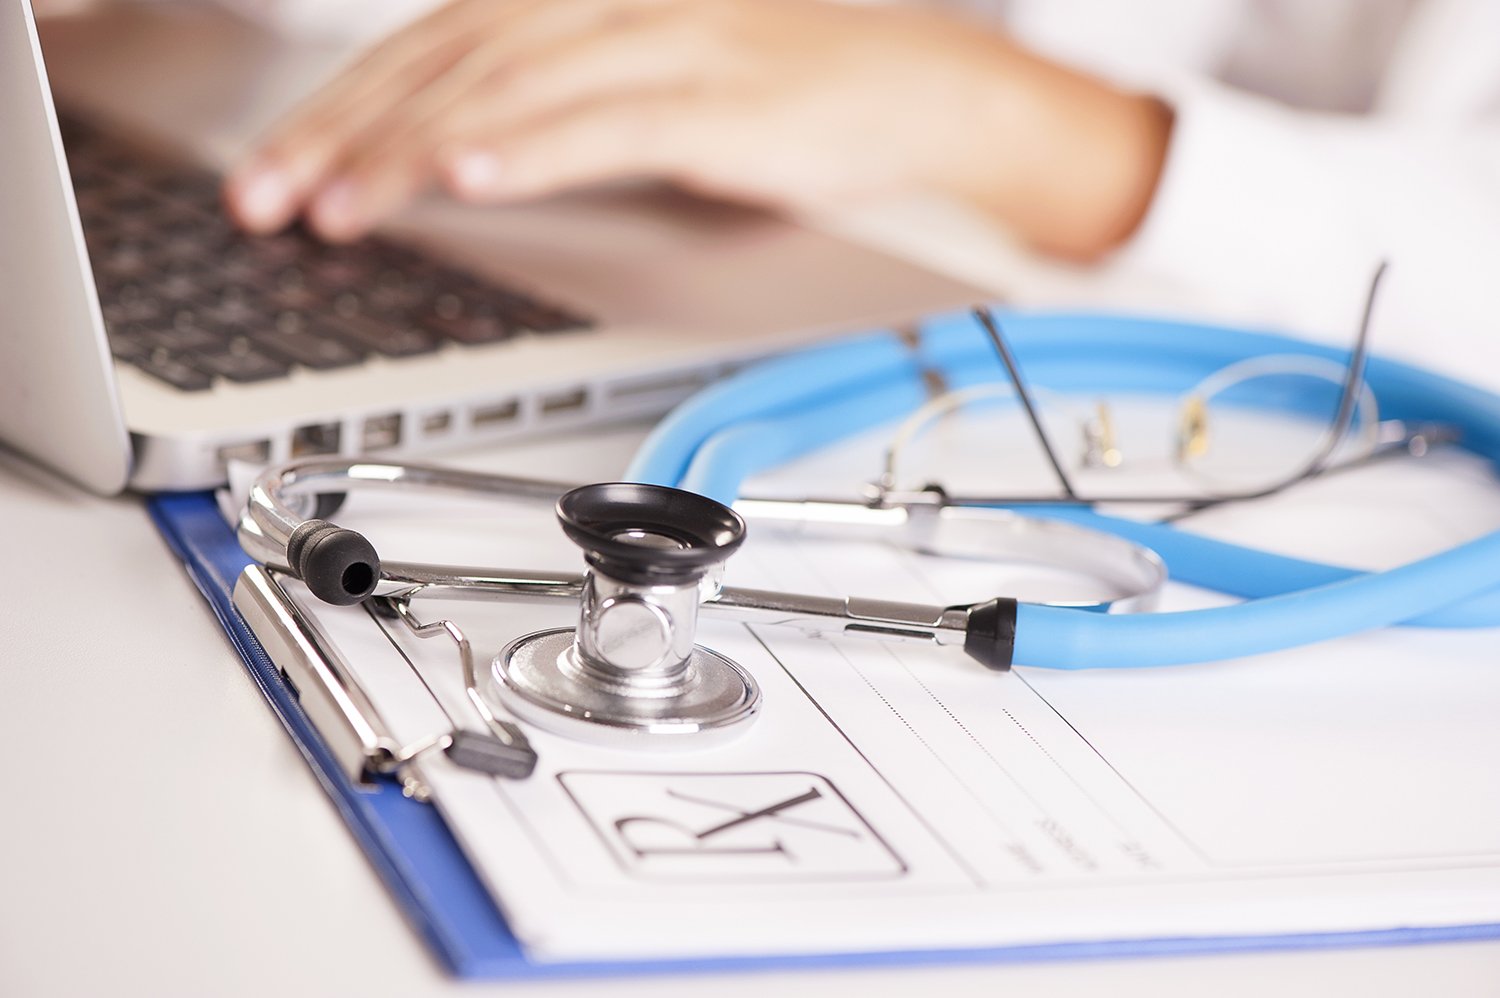 Hospitals are vulnerable to cyberattacks